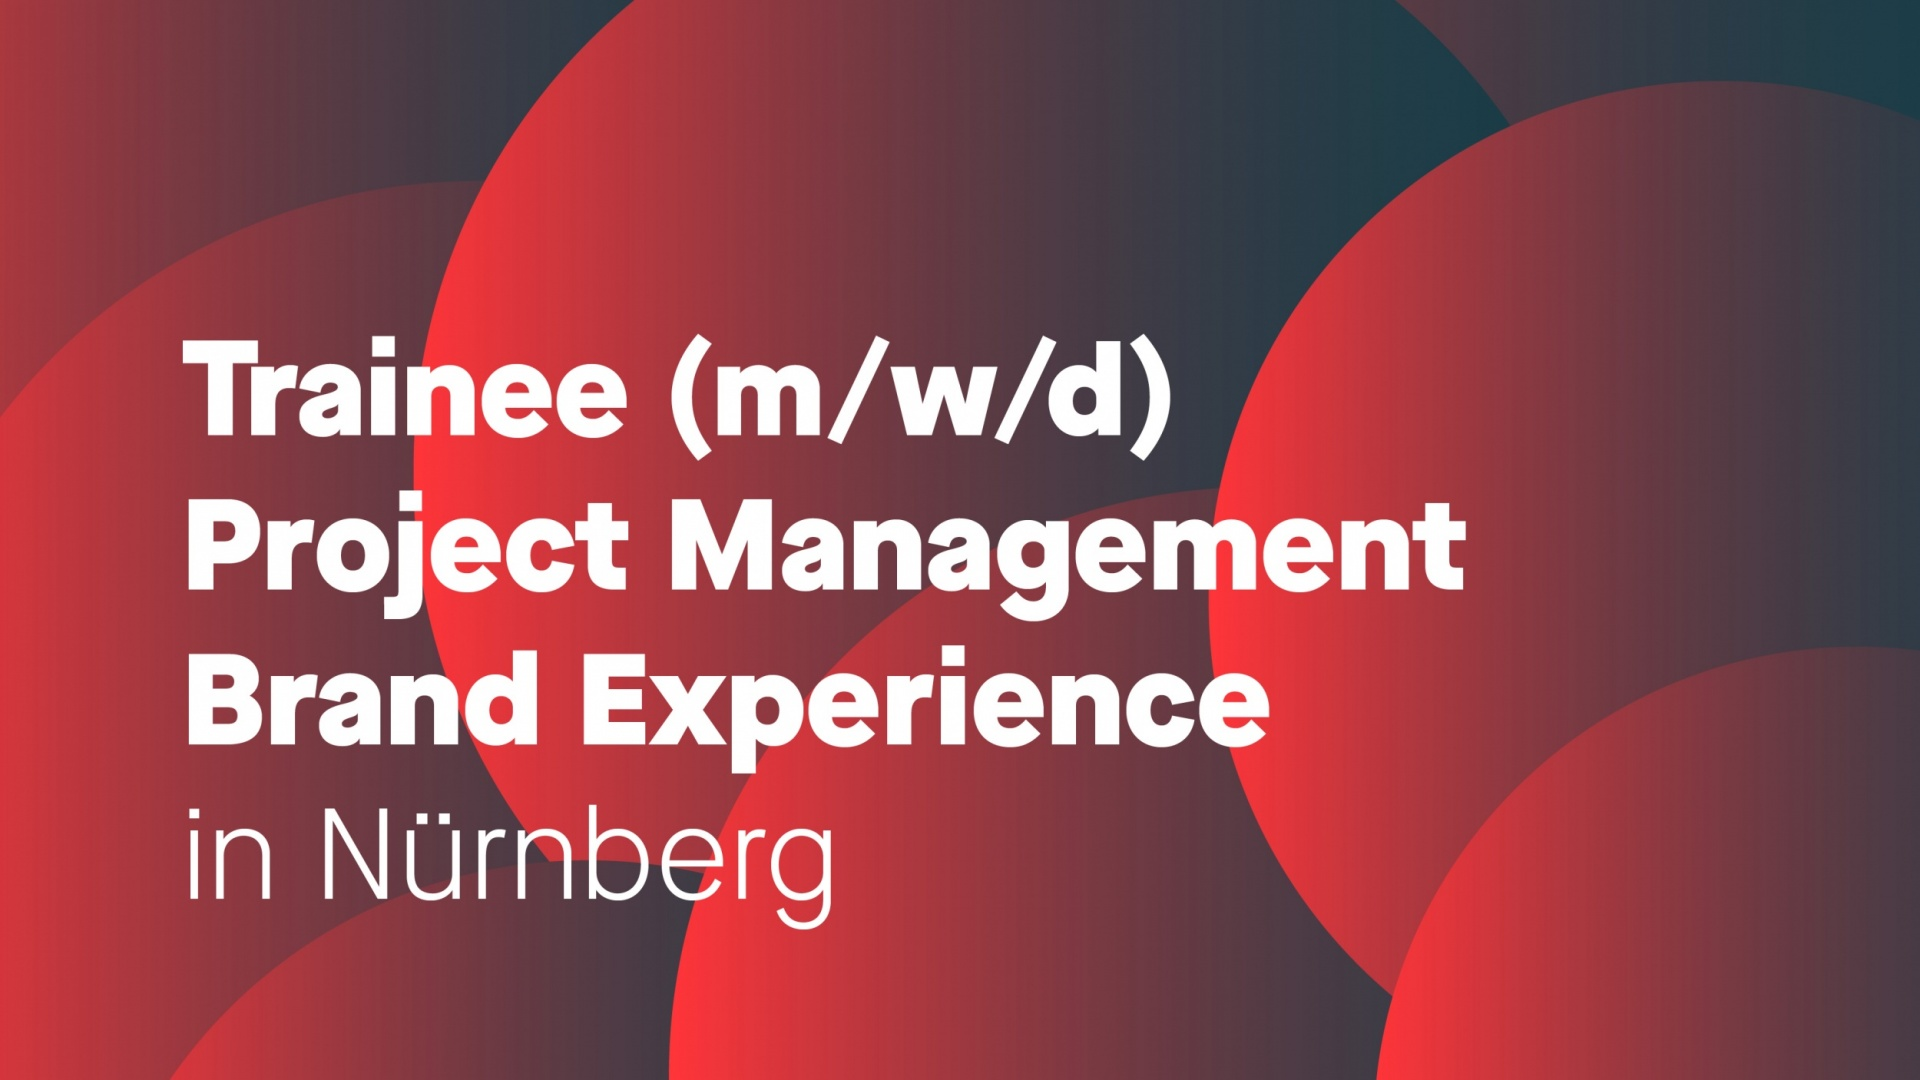 Trainee Project Management Brand Experience (m/w/d)